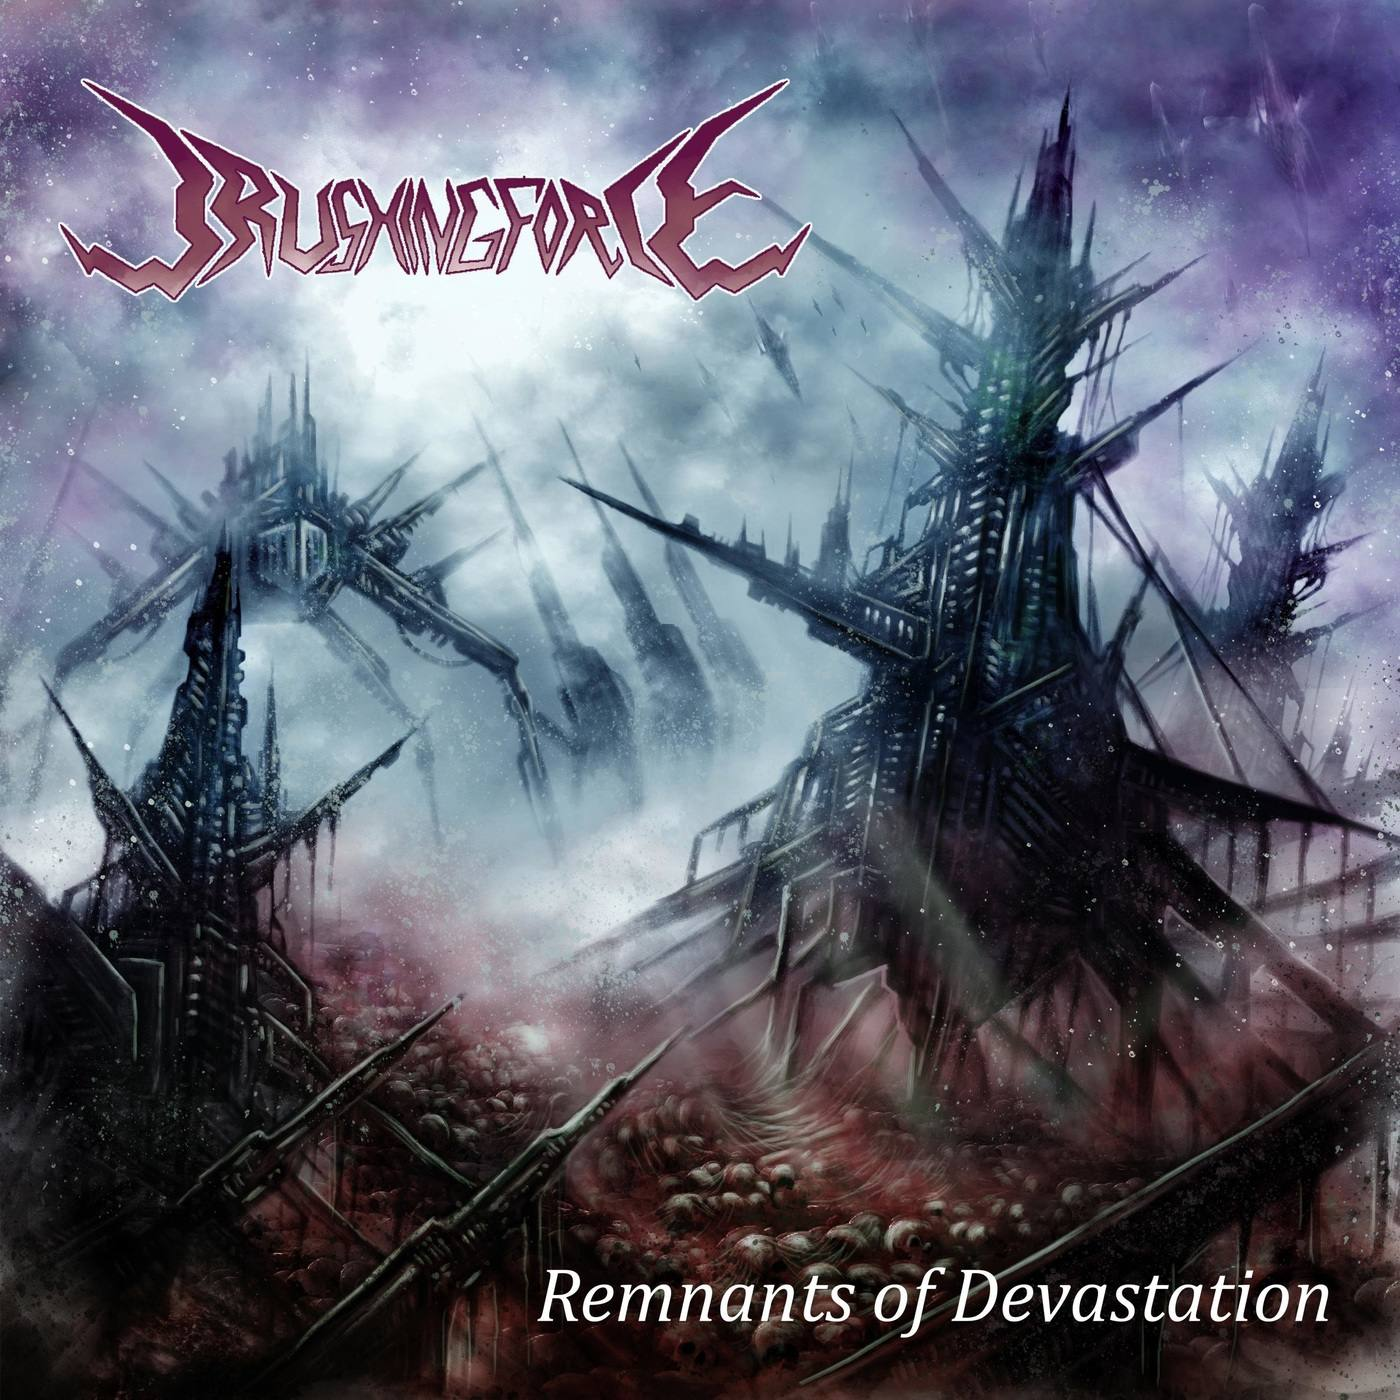 Crushing Force - Remnants of Devastation